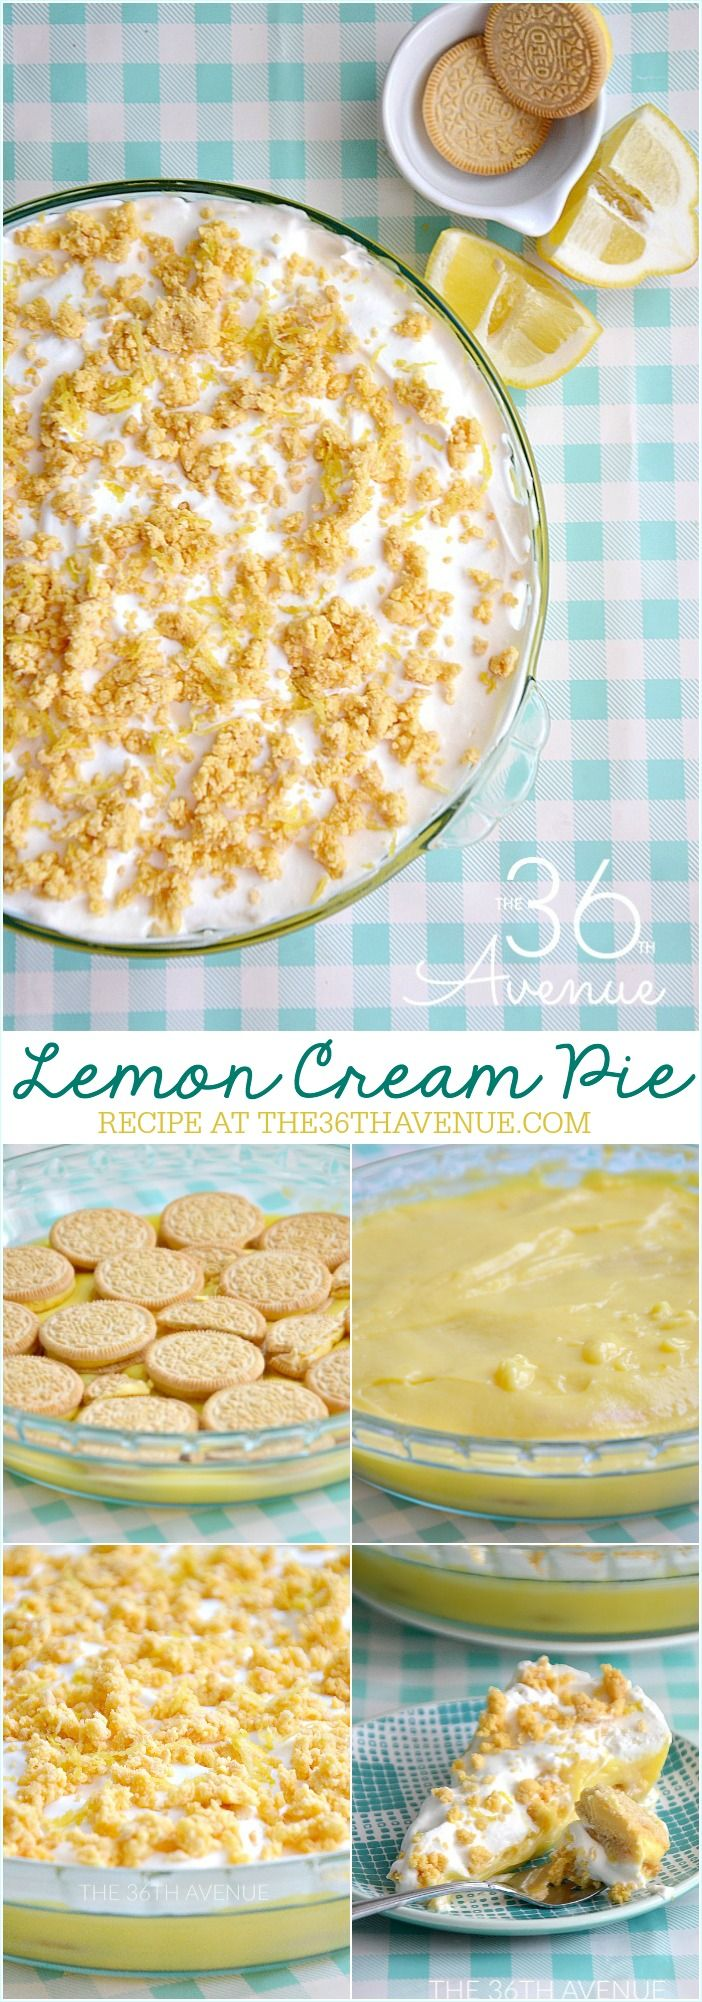 Dessert Recipe - This Lemon Cream Pie is a delicious and easy dessert recipe that your entire family is going to love.